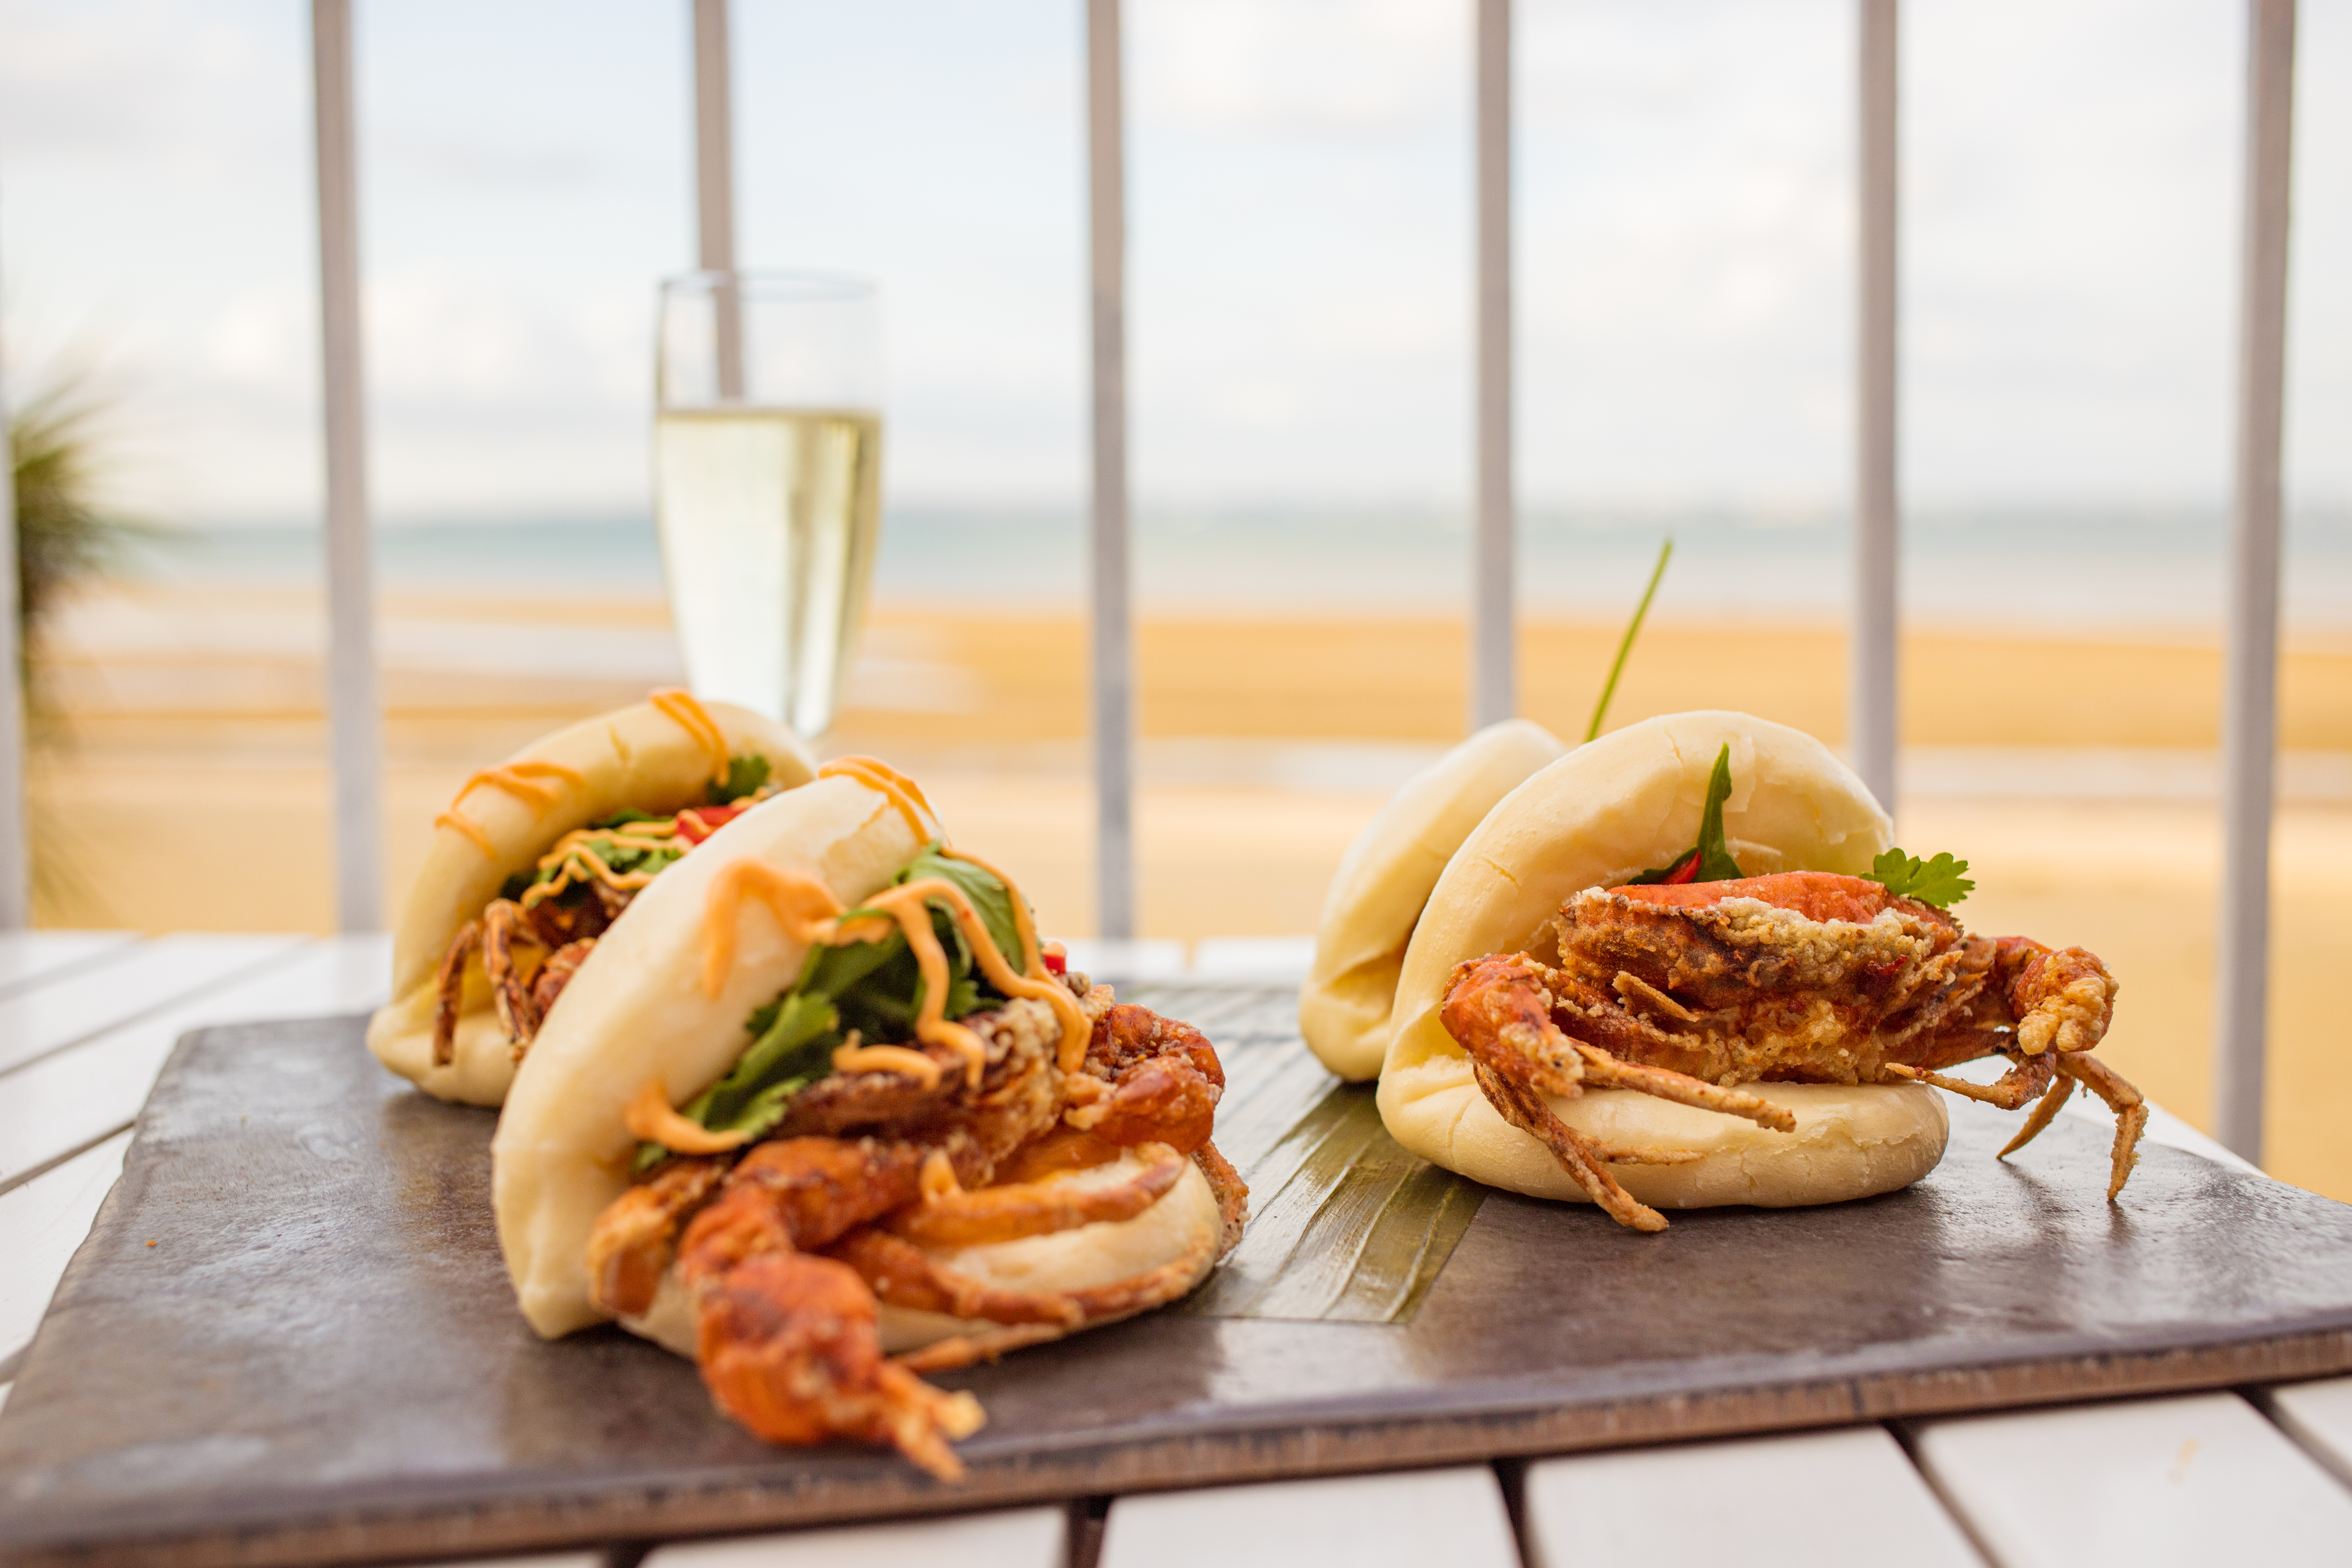 A slate of Bao buns and a glass of bubbly on a table overlooking the beach at Cadet Beach Club, Ryde, Isle of Wight